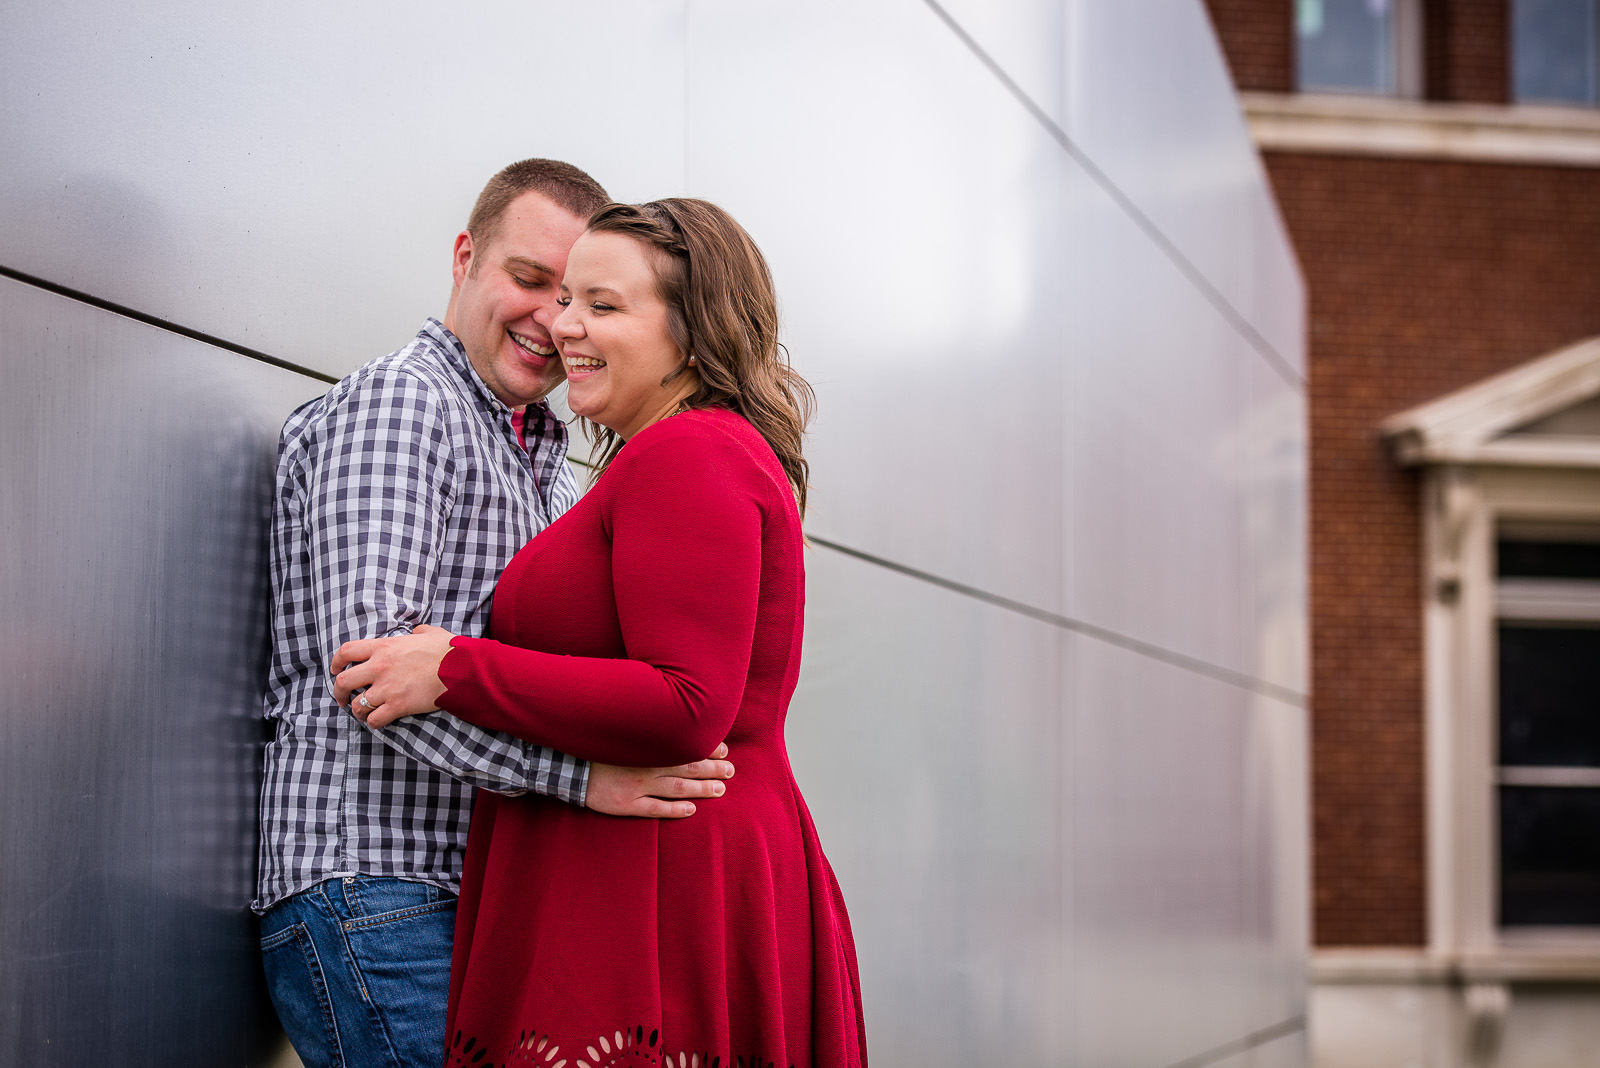 Eric_and_Christy_Photography_Blog_Stacey_Geoff_Engagement-22